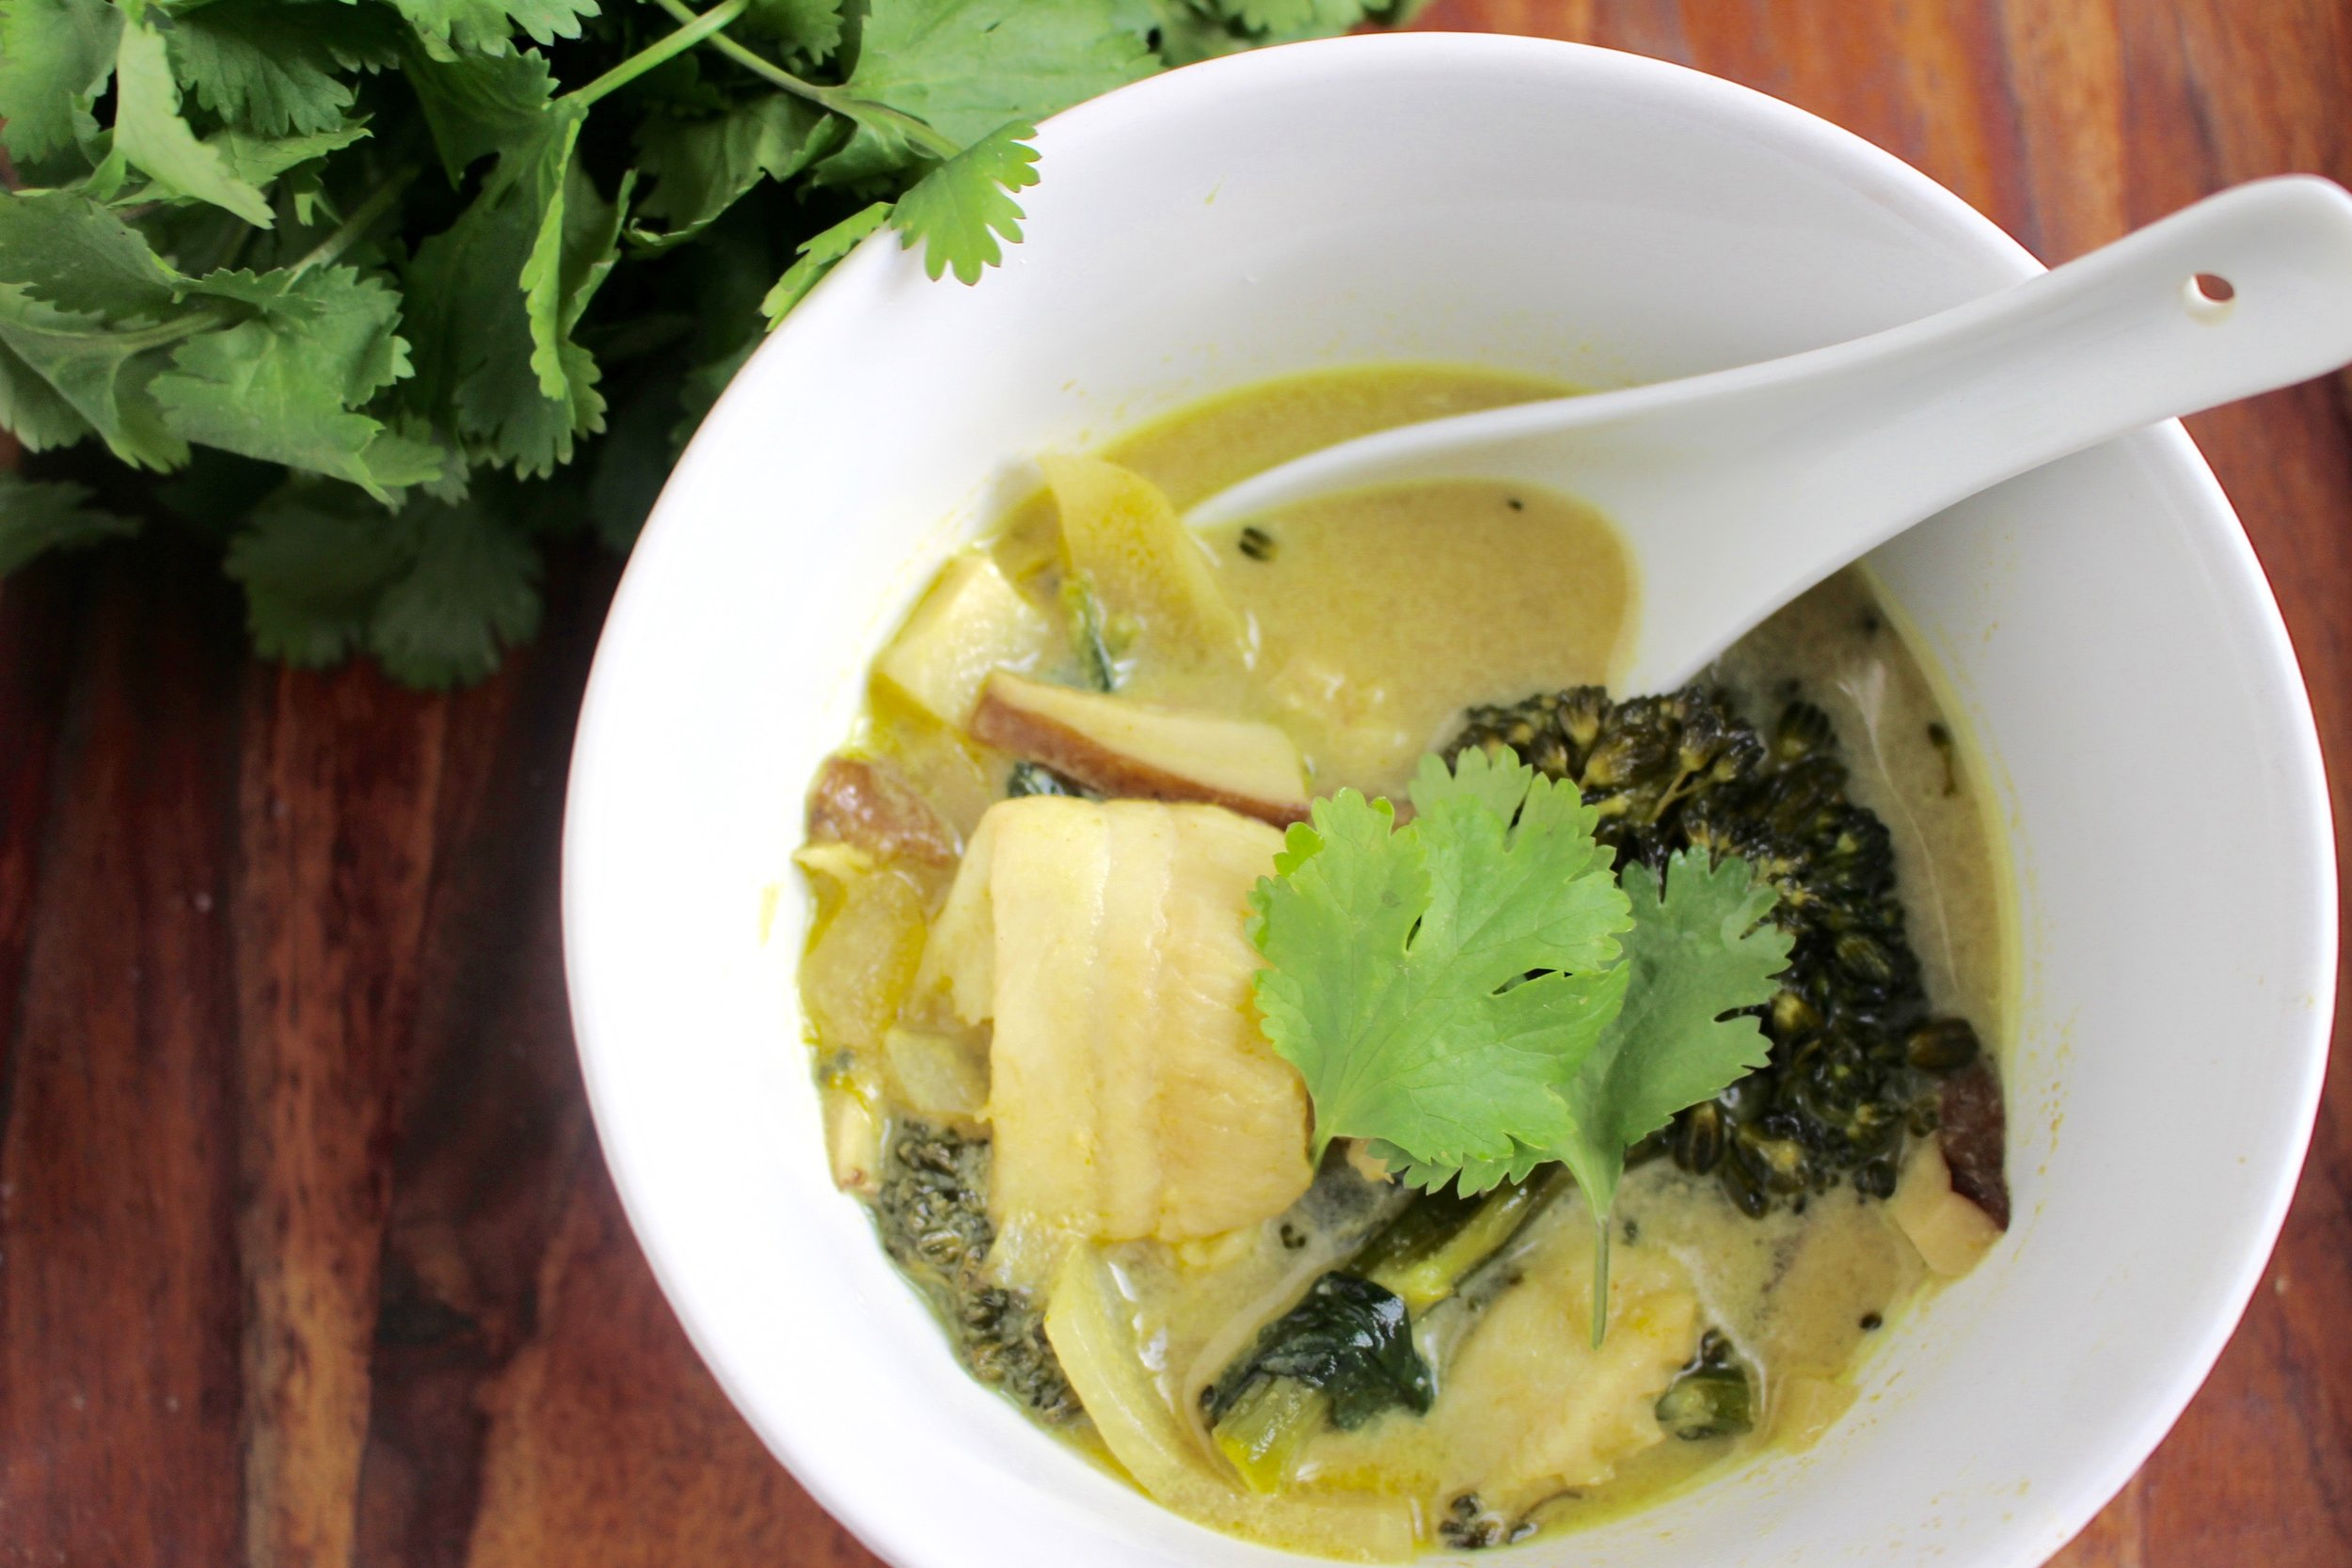 Green curry fish stew | Me & The Moose. Bottled green curry makes quick work of this tasty Thai-inspired stew that's chock full of fish and veggies. #meandthemoose #Thaicurry #healthymeals #whole30 #whole30recipes #onepotmeals #dinnerrecipes